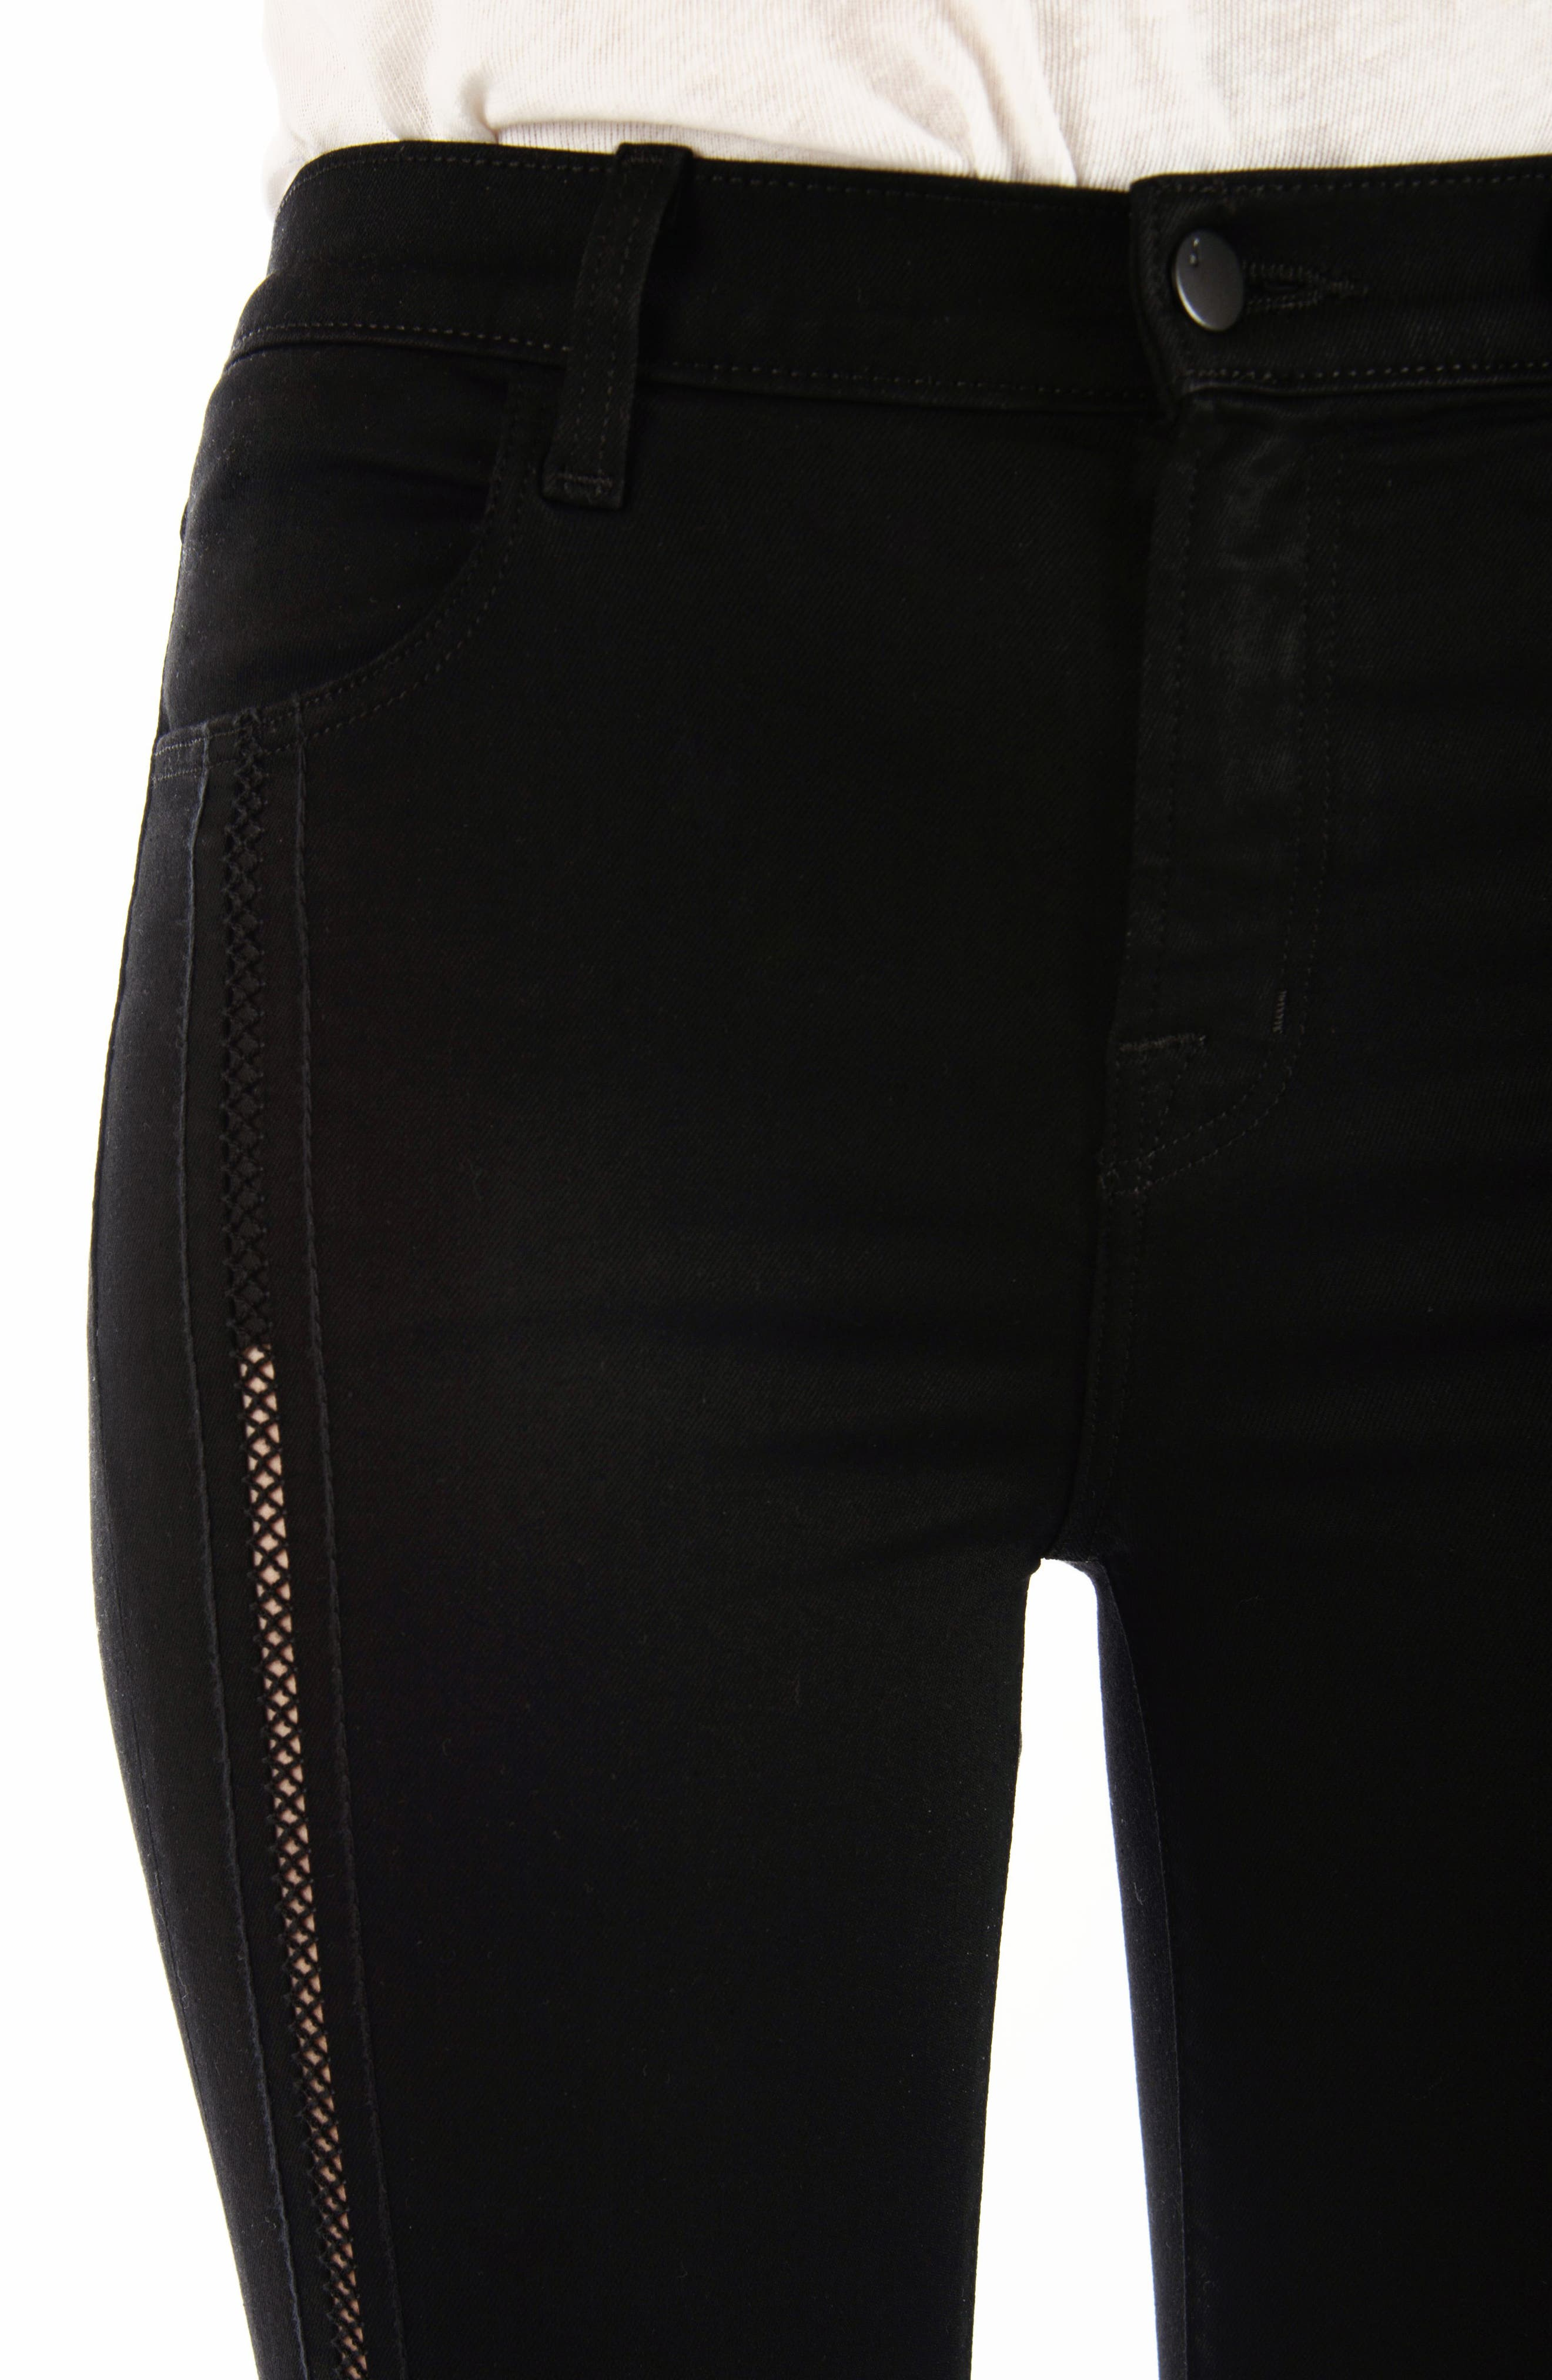 Alana High Waist Crop Skinny Jeans,                             Alternate thumbnail 4, color,                             Black Ladder Lace